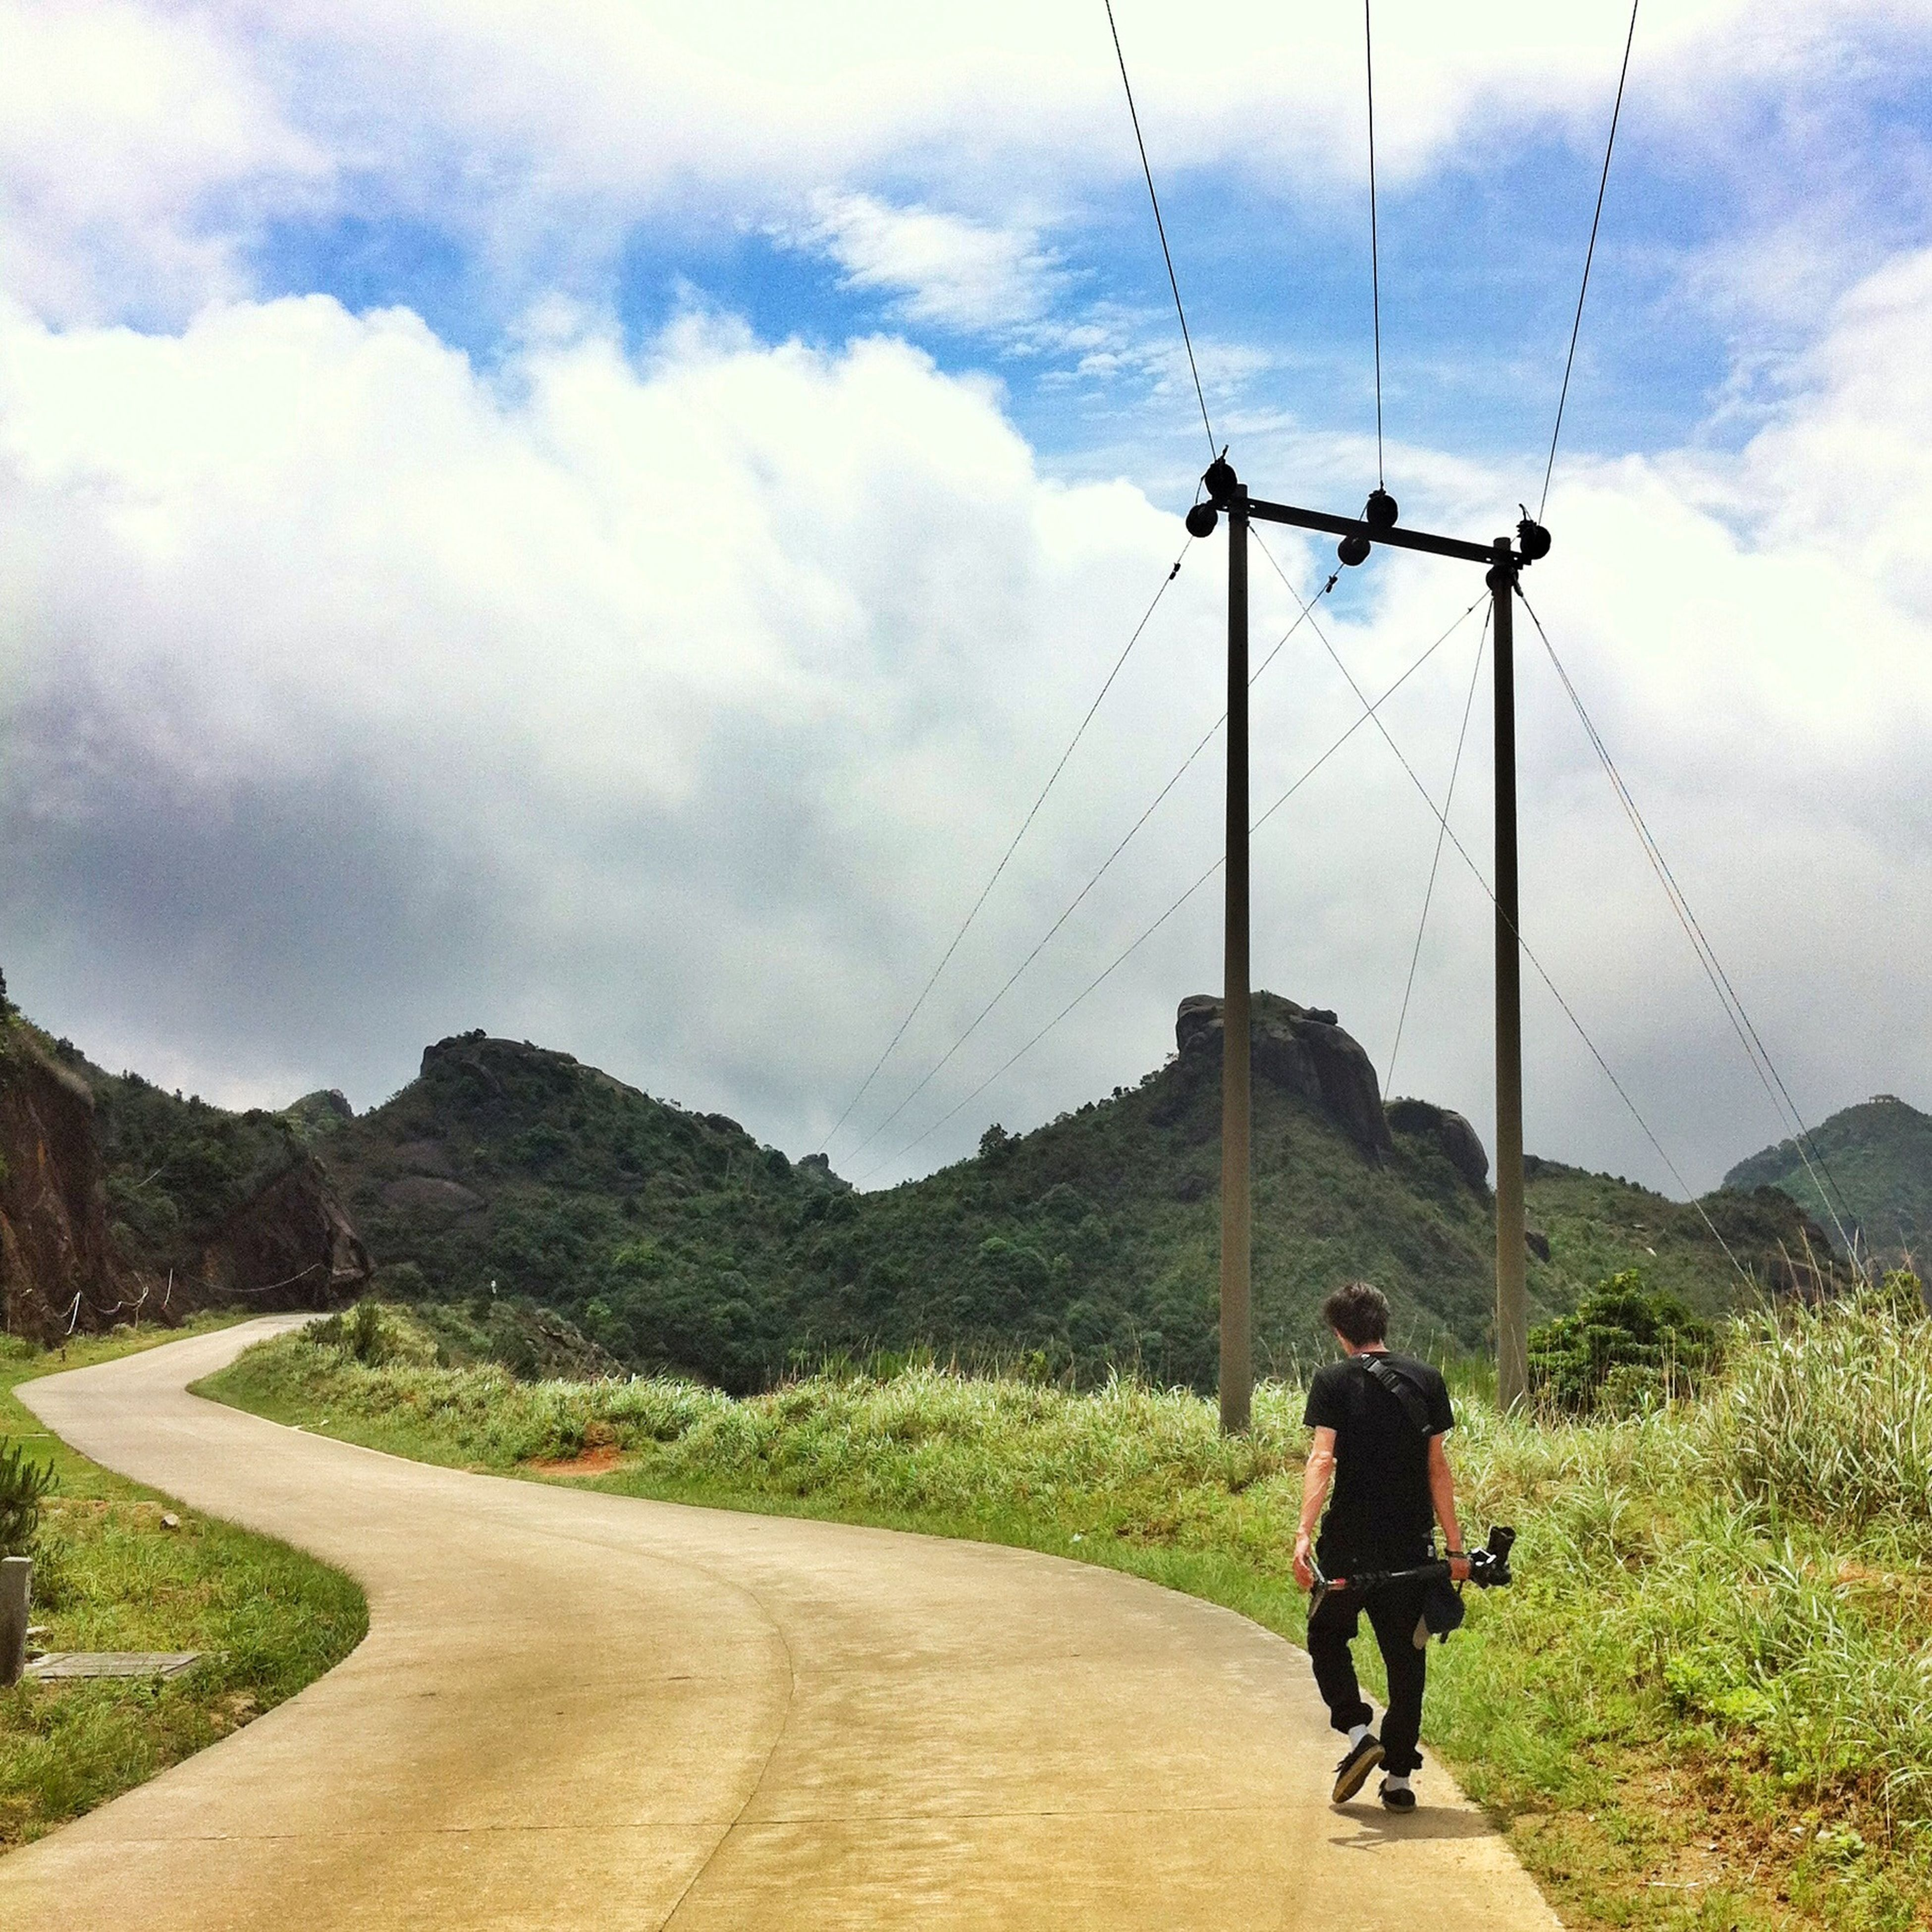 full length, sky, lifestyles, leisure activity, rear view, men, cloud - sky, landscape, mountain, casual clothing, transportation, road, walking, the way forward, cloud, standing, nature, person